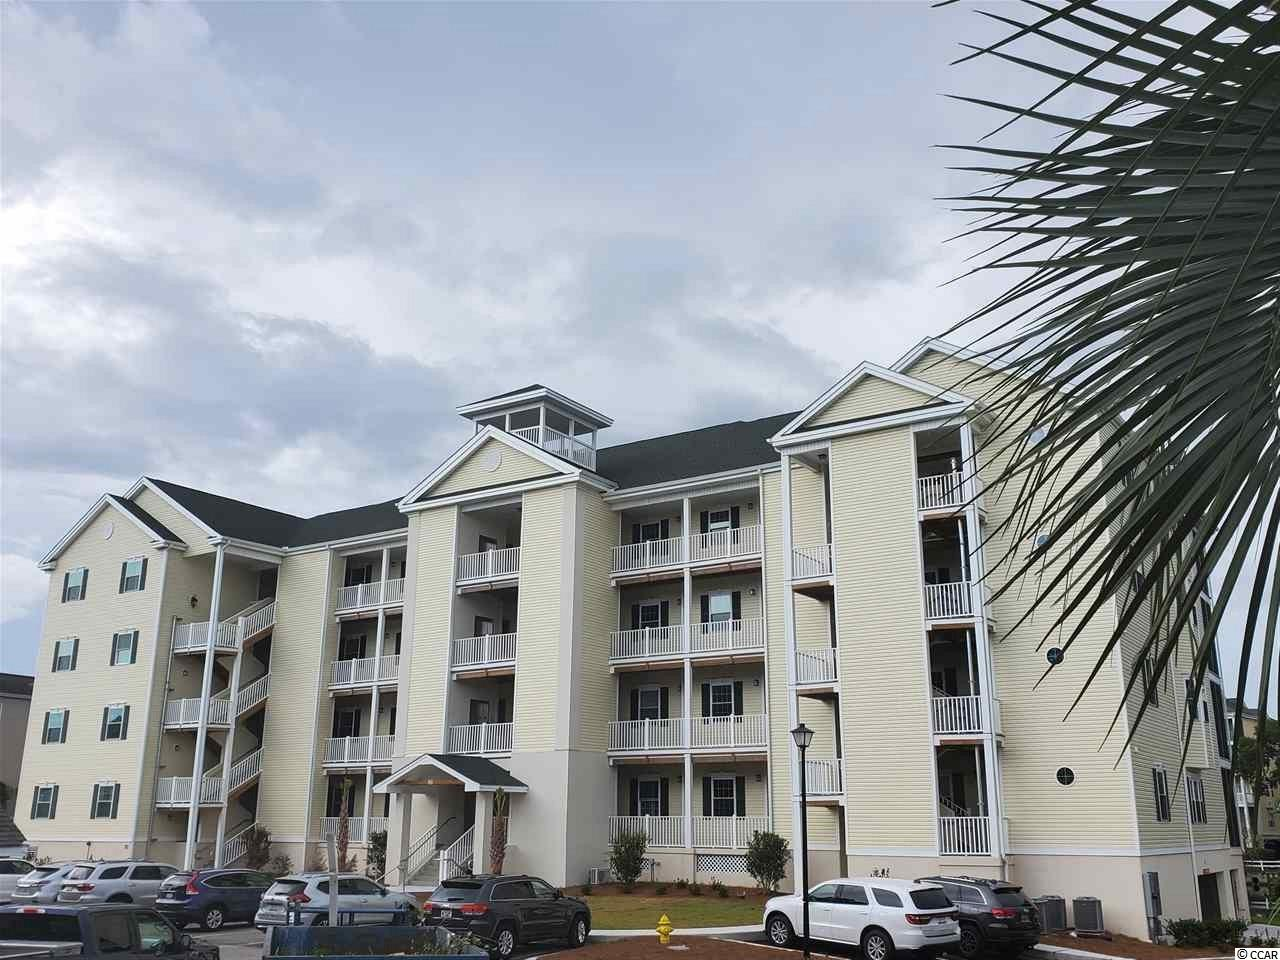 MLS#:1618957 Mid-Rise 4-6 Stories 601 Hillside Dr. North #2535